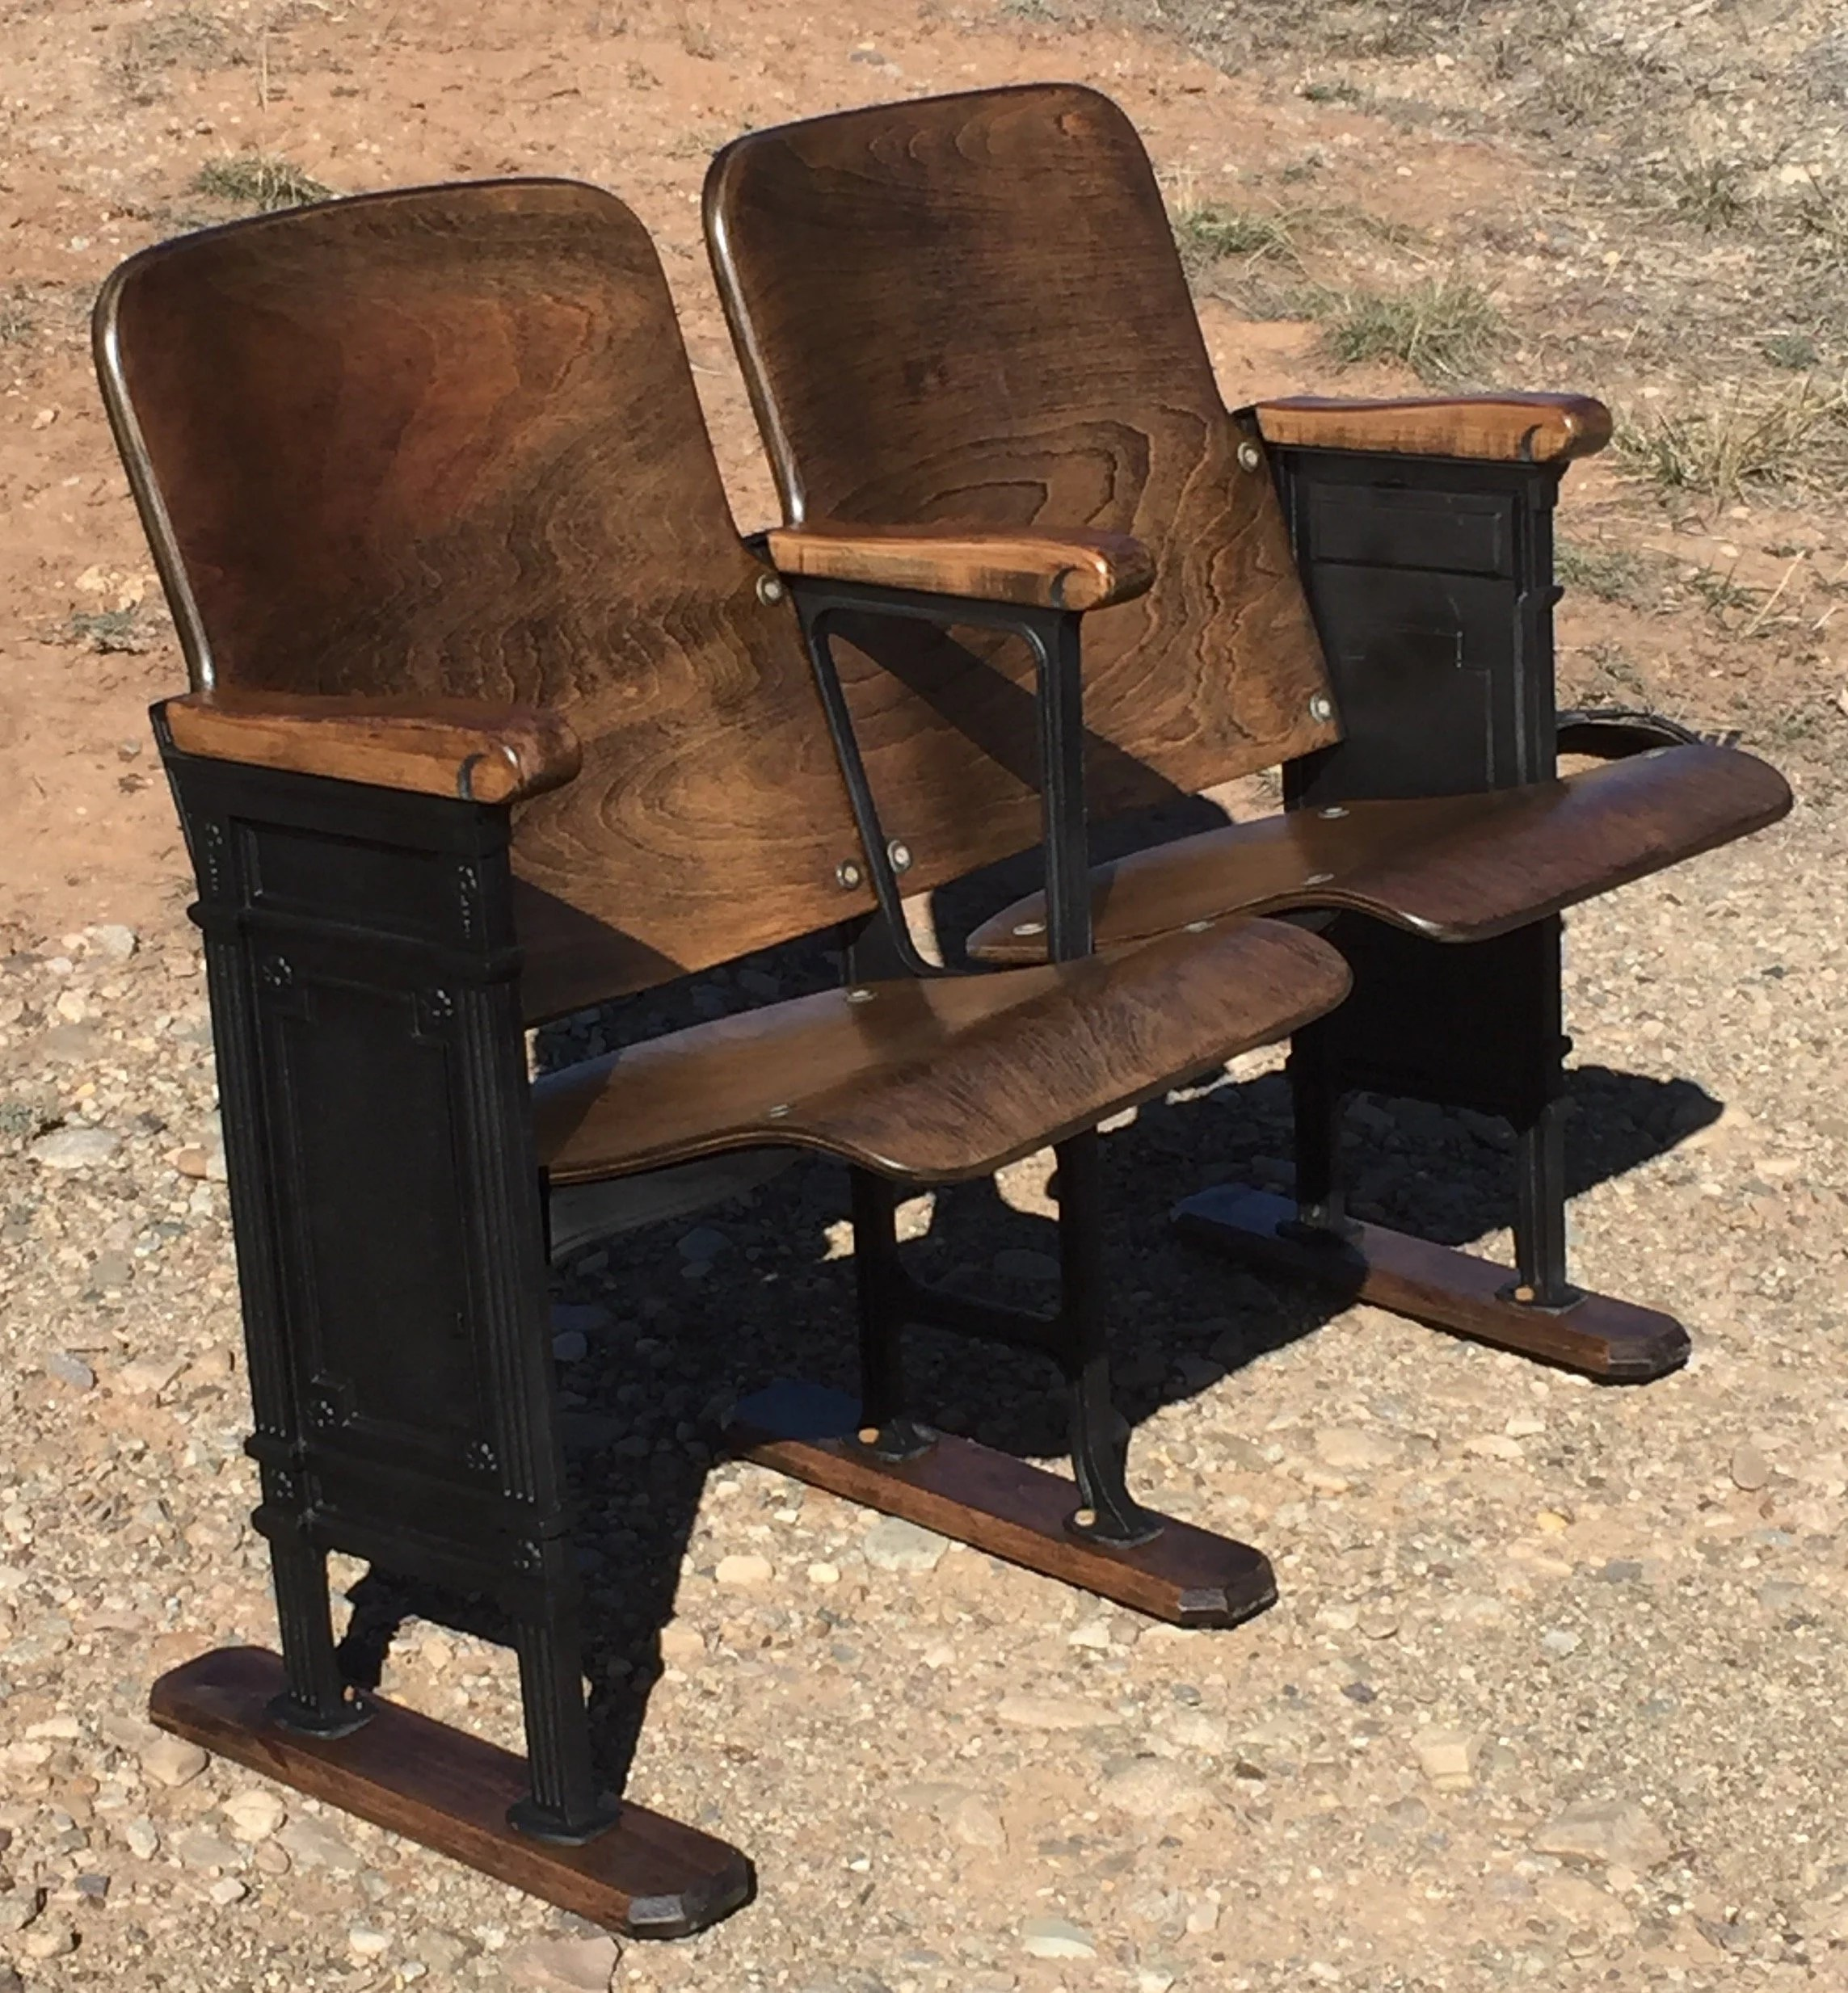 Pew Chairs Sold Accepting Orders Set Of Two Refurbished Theatre Chairs Theater Seats Theater Chairs Theater Seats Vintage School Chairs Church Pew